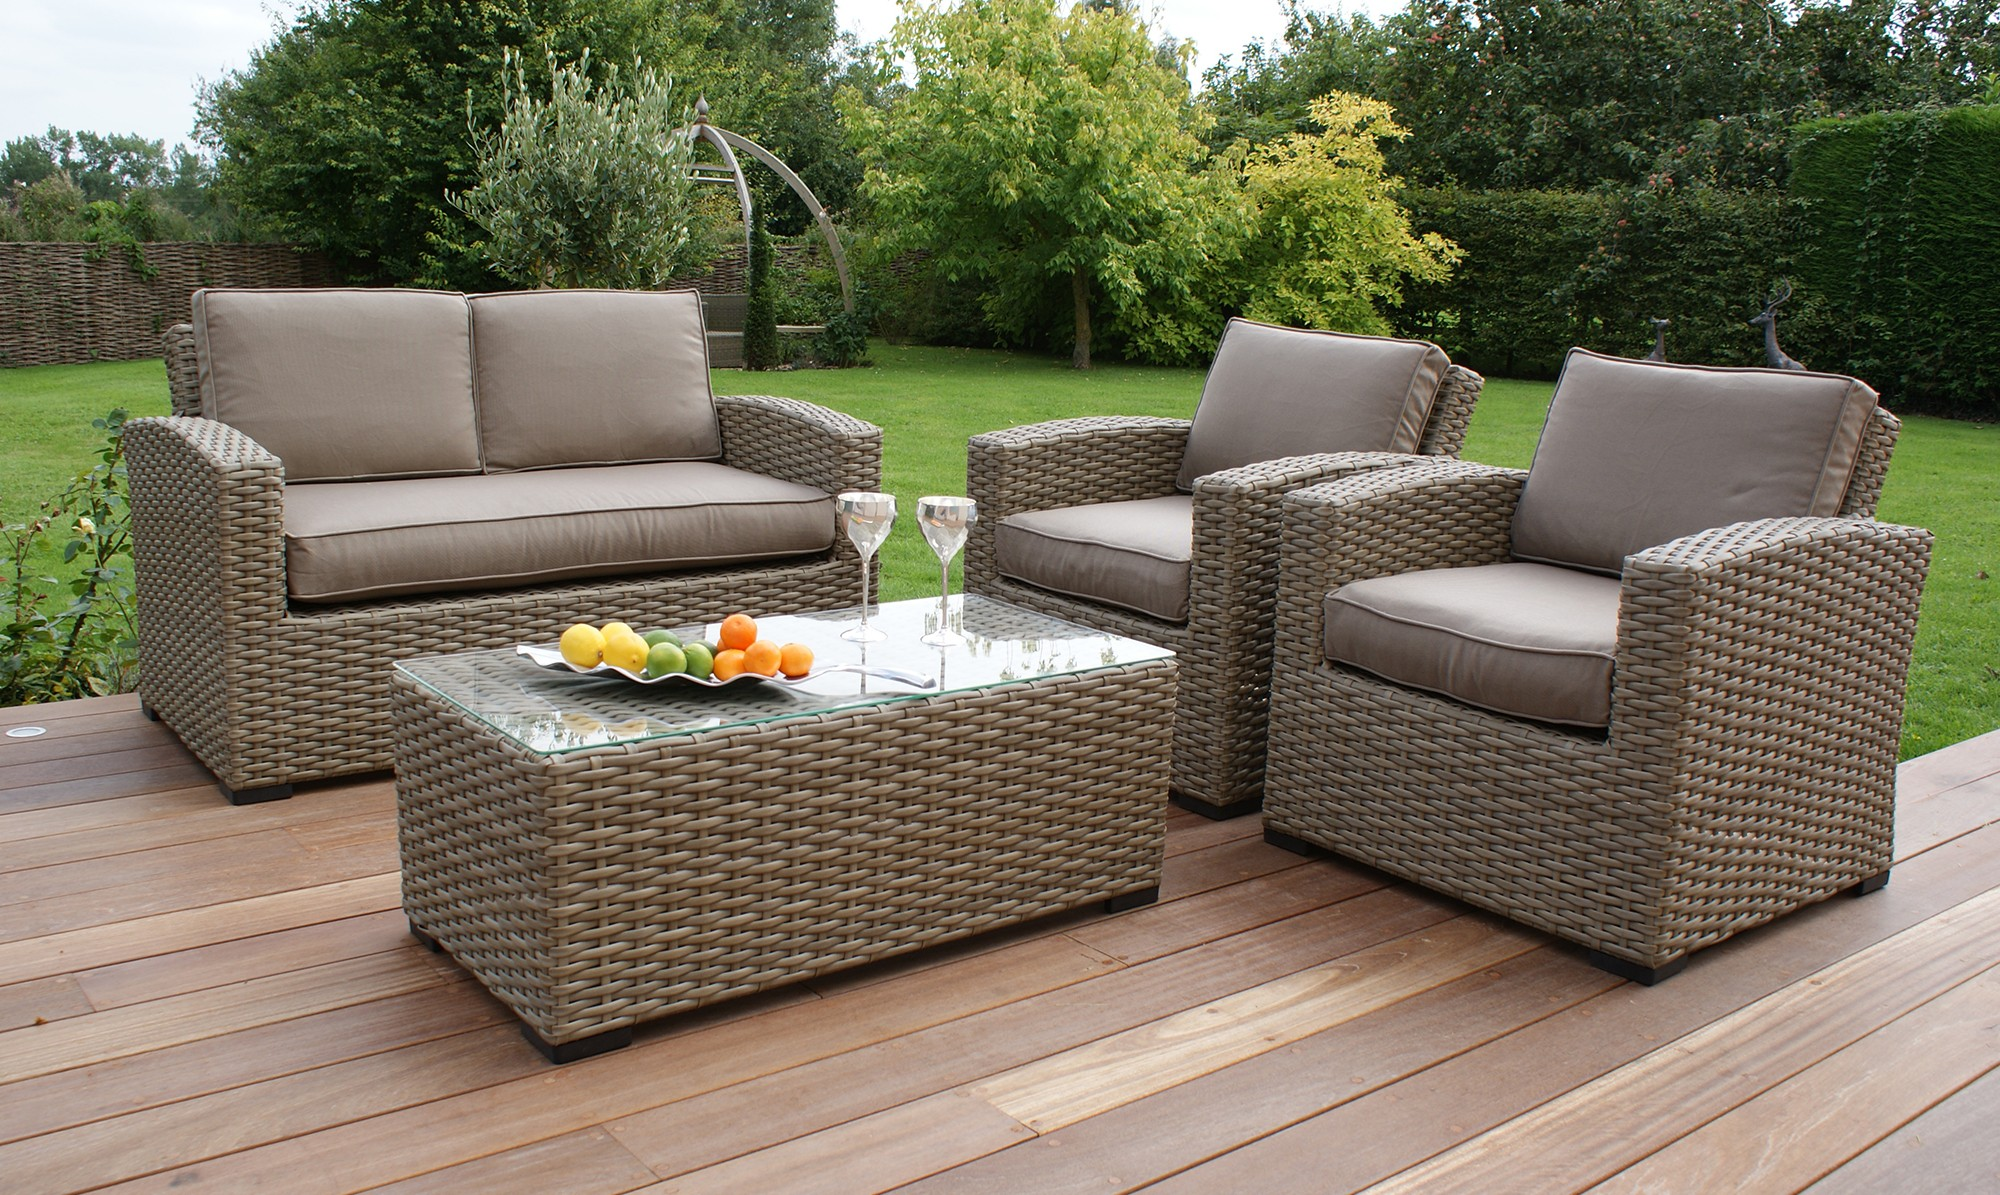 Rattan garden furniture rattan garden furniture my housing history within garden furniture covers asda AXOYZRF